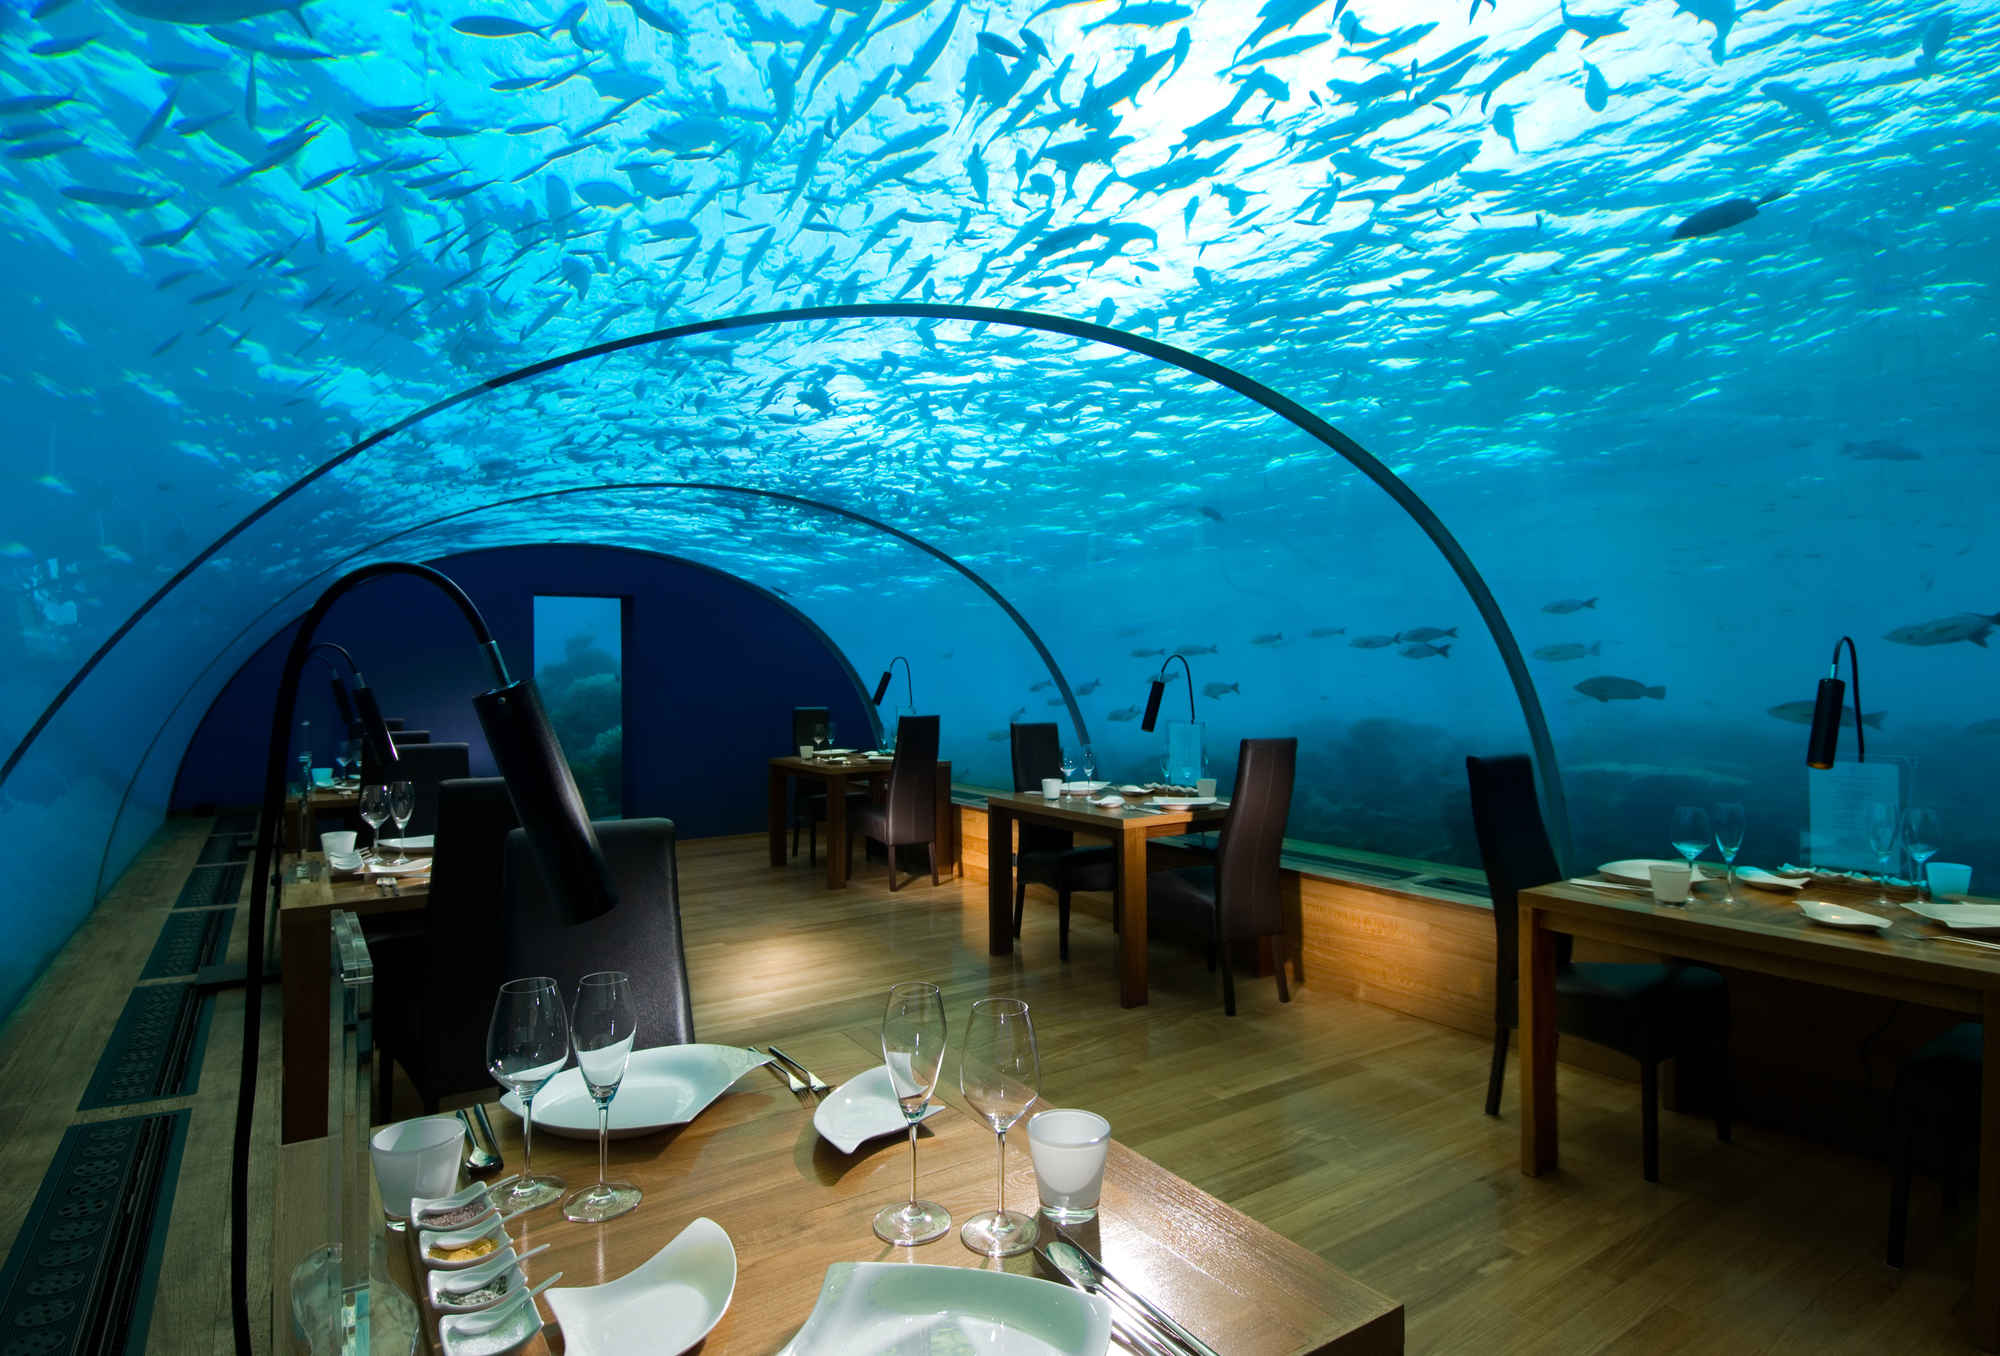 Norway Is Home To Europe's First Underwater Restaurant ...